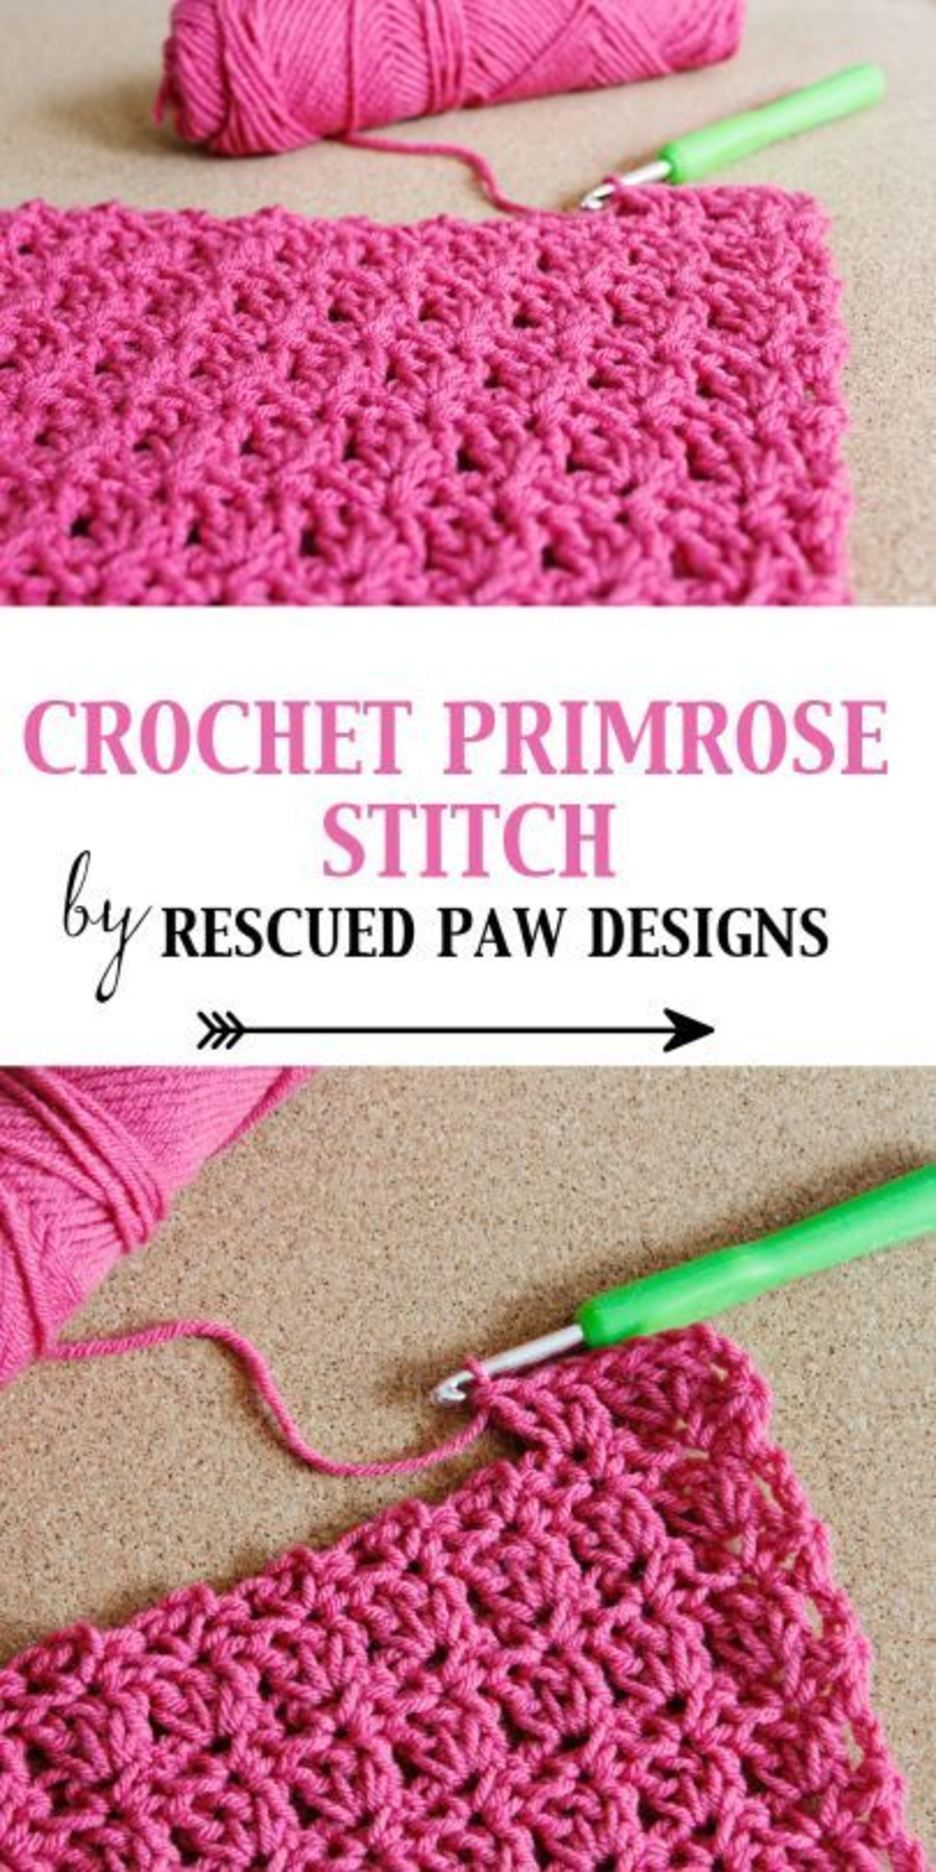 Crochet Primrose Stitch Tutorial - Free Pattern | Muster, Stricken ...